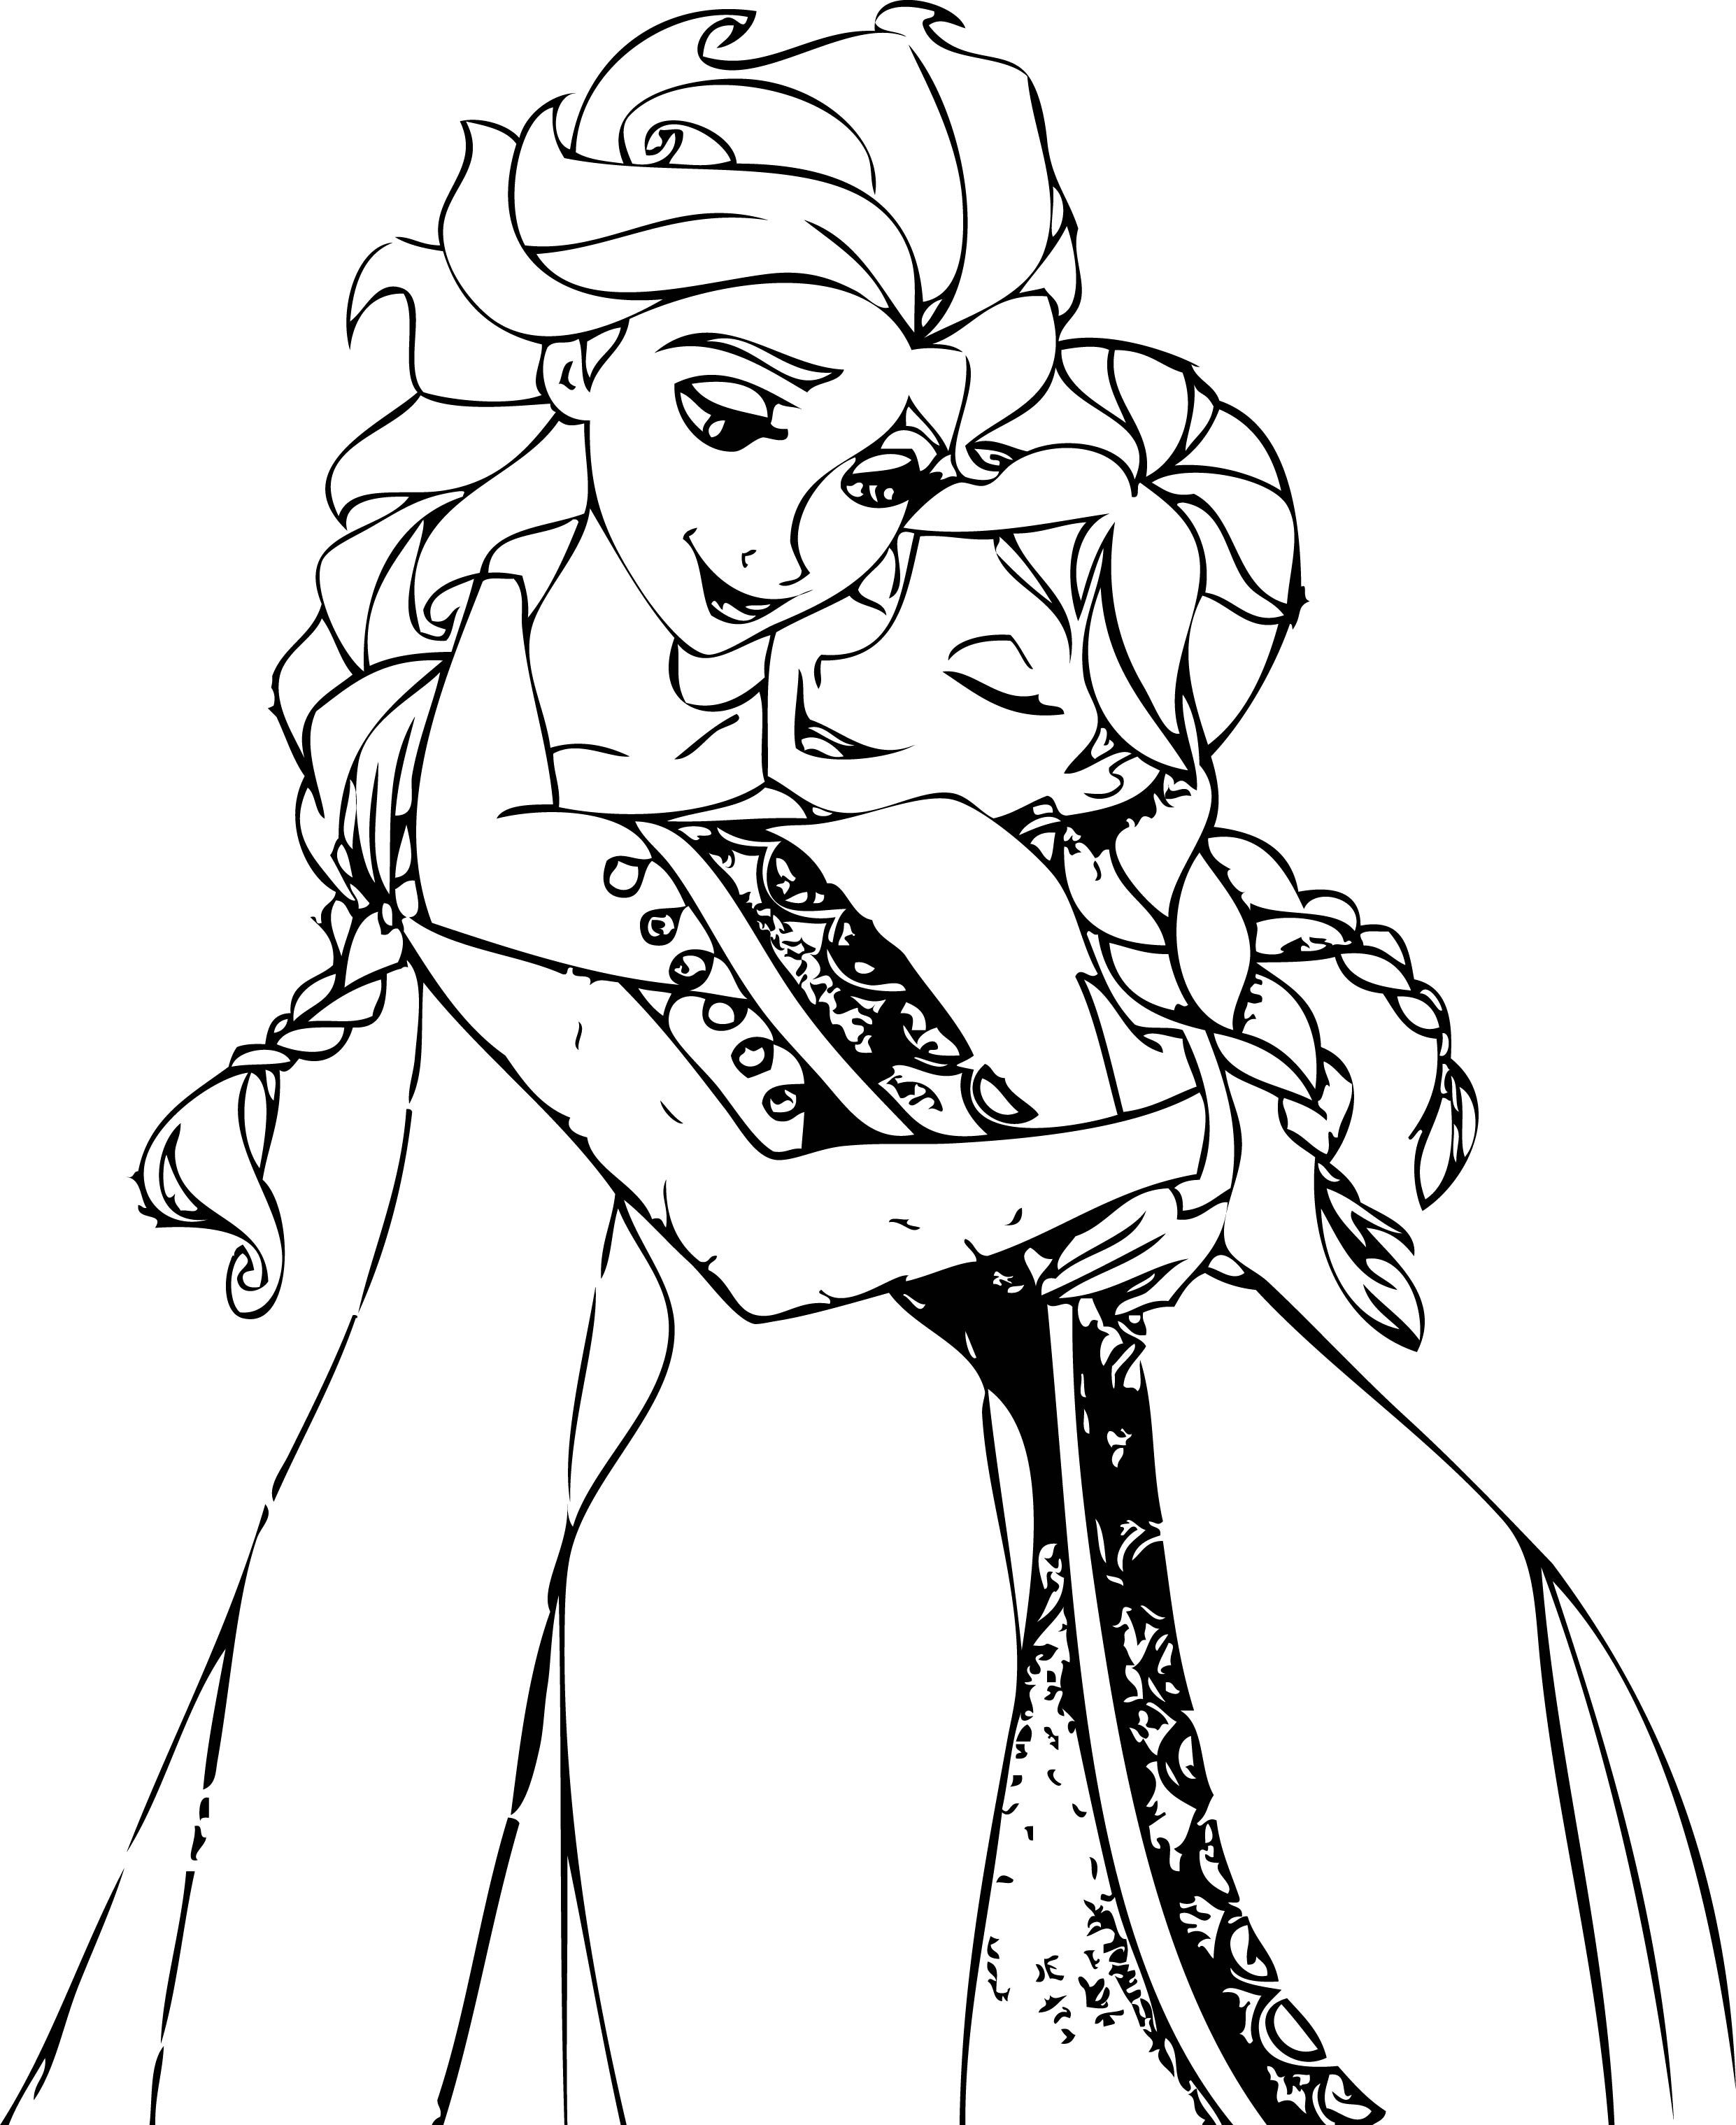 Cool Elsa And Anna Hug Coloring Page